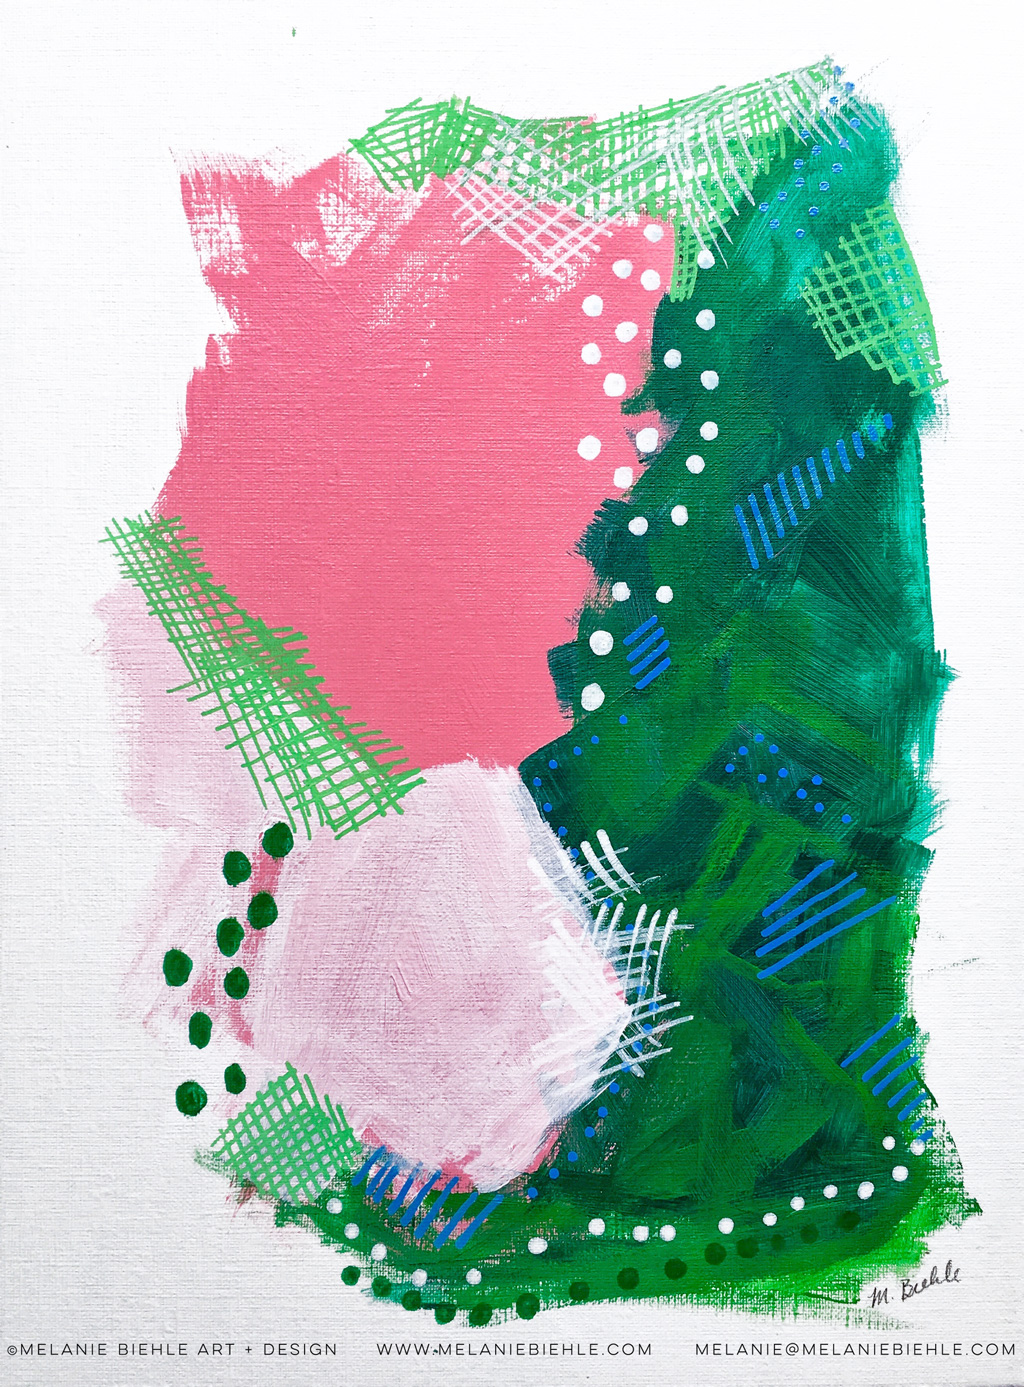 Fresh, spring hues of pink and green was the inspiration for the first of this three painting mini-series, all on various shades of pink backgrounds. The painting is created on Canson canvas board.